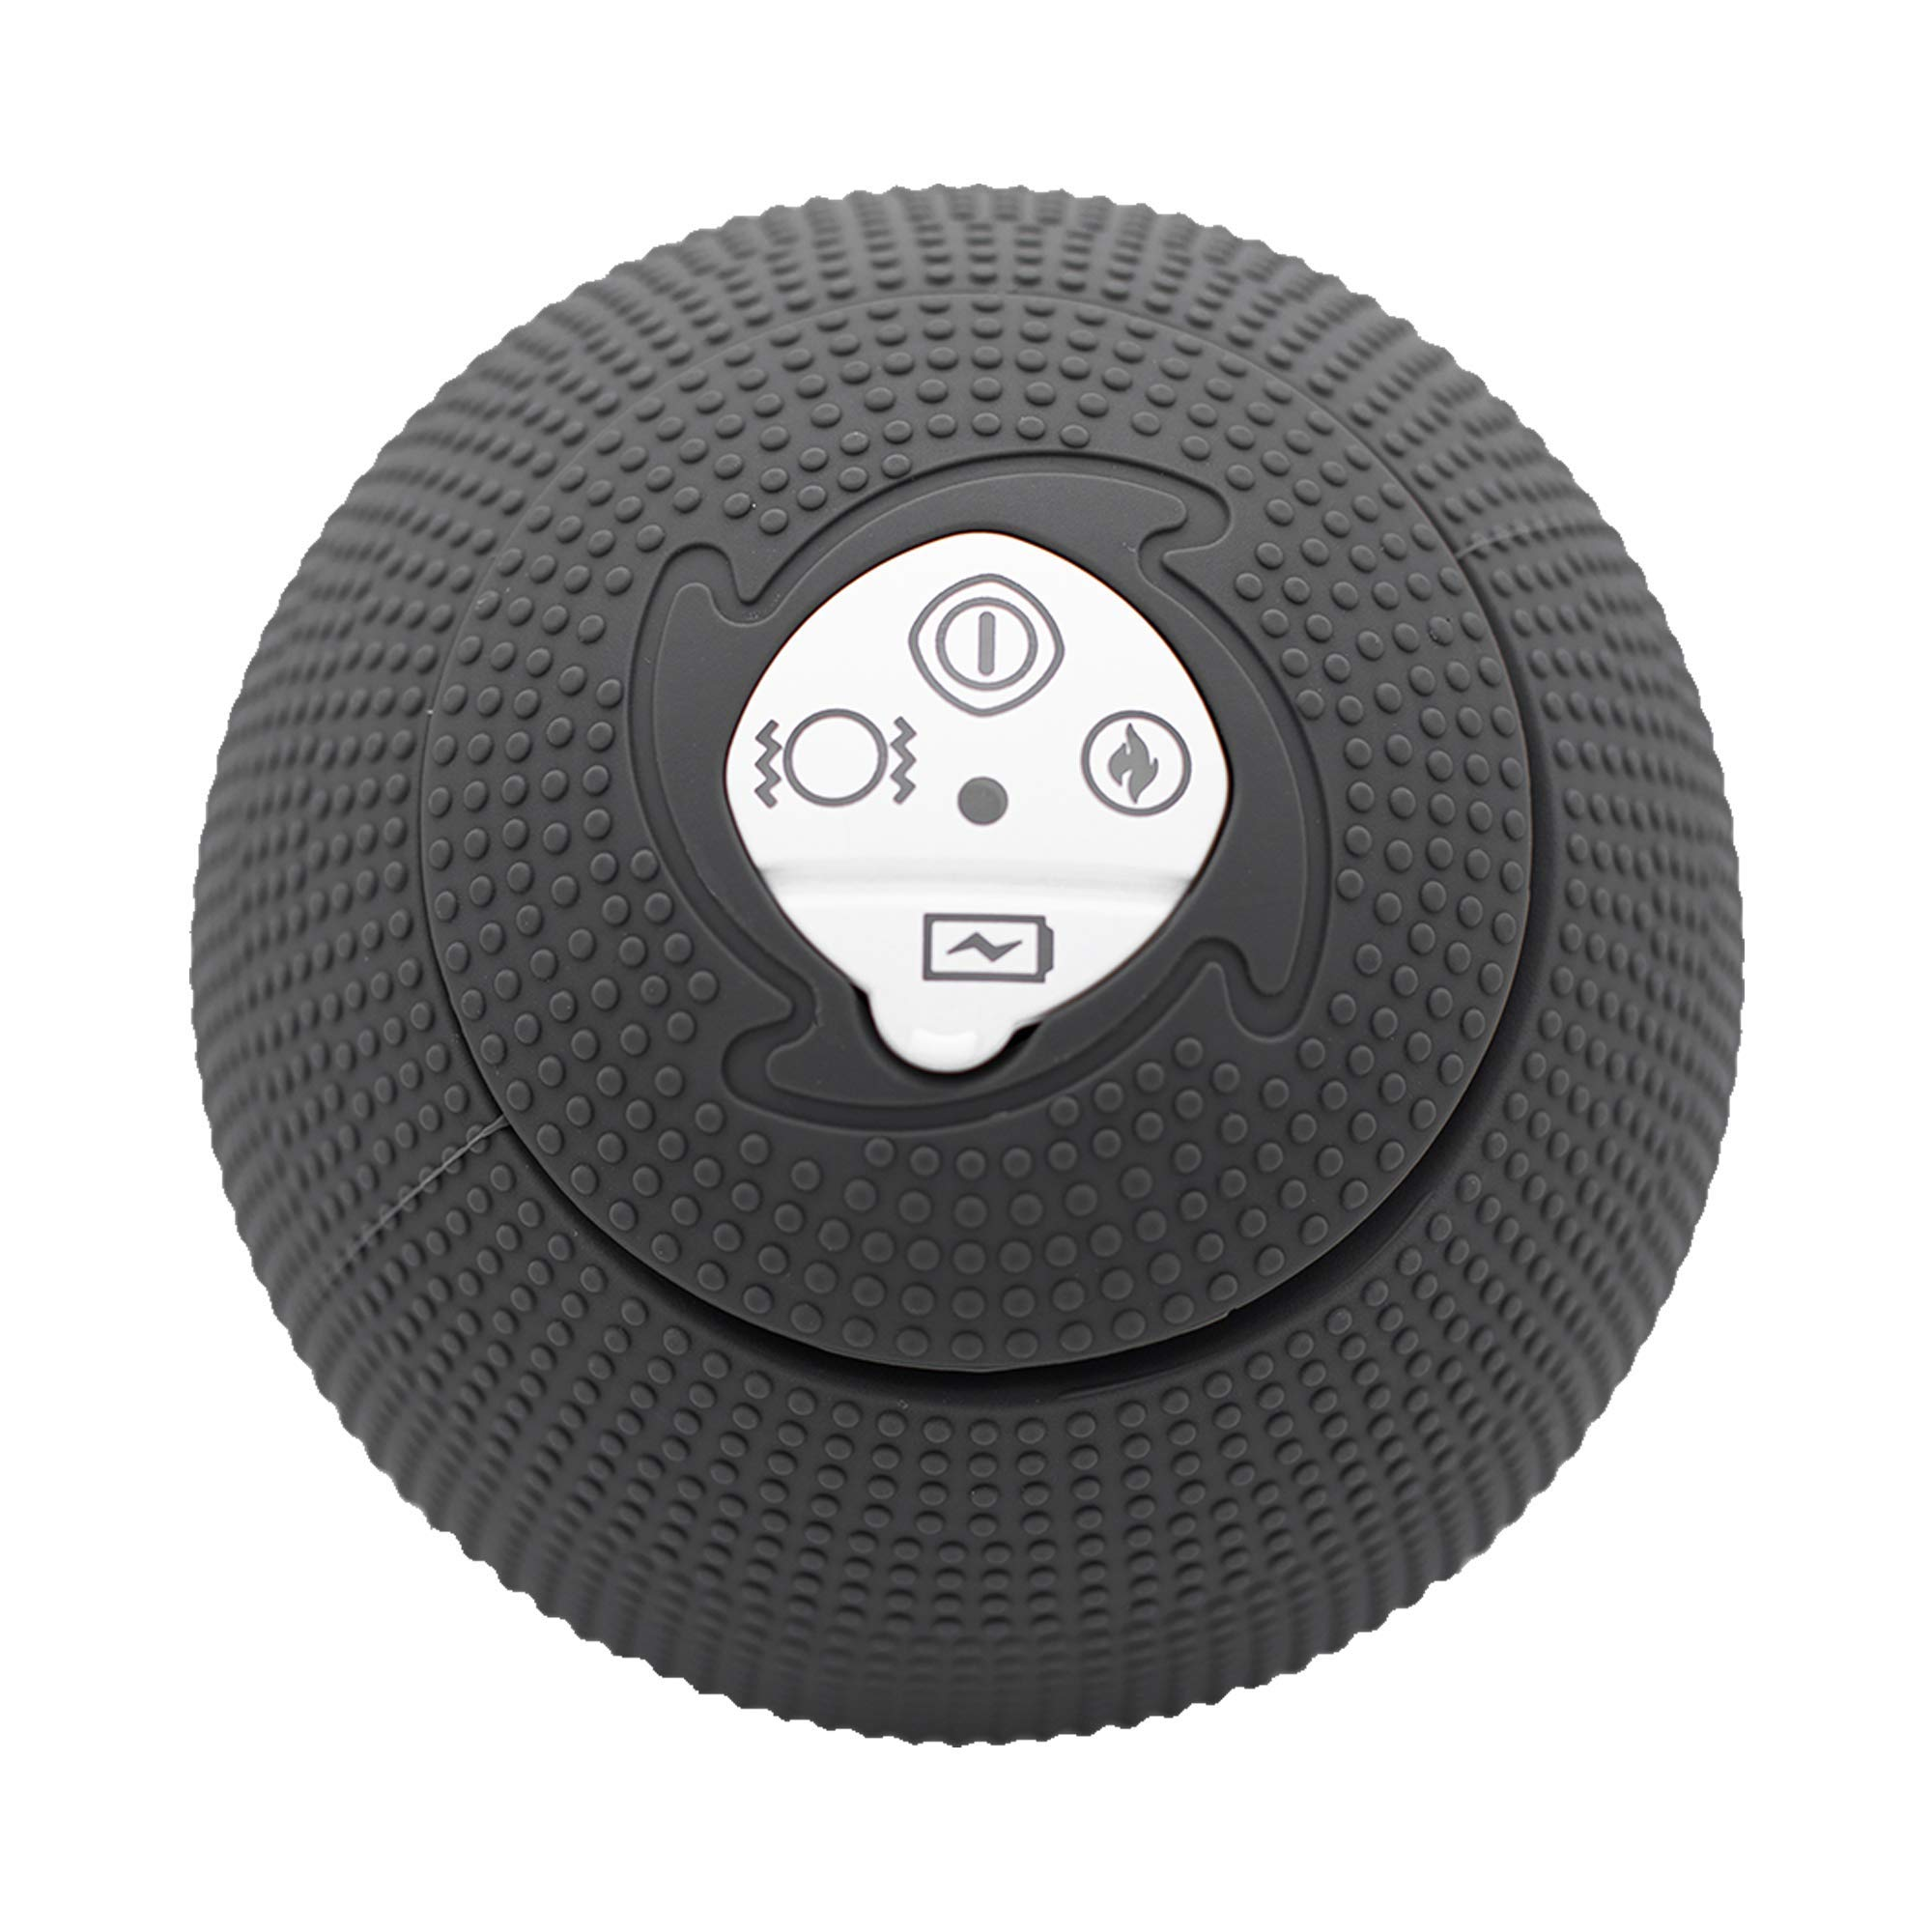 MyoStorm Heating Vibrating Massage Ball Roller for Deep Tissue Muscle Recovery Therapy and Pain Relief w/ 3 Speed Vibration + 2 Heat Settings (Charcoal) by MyoStorm